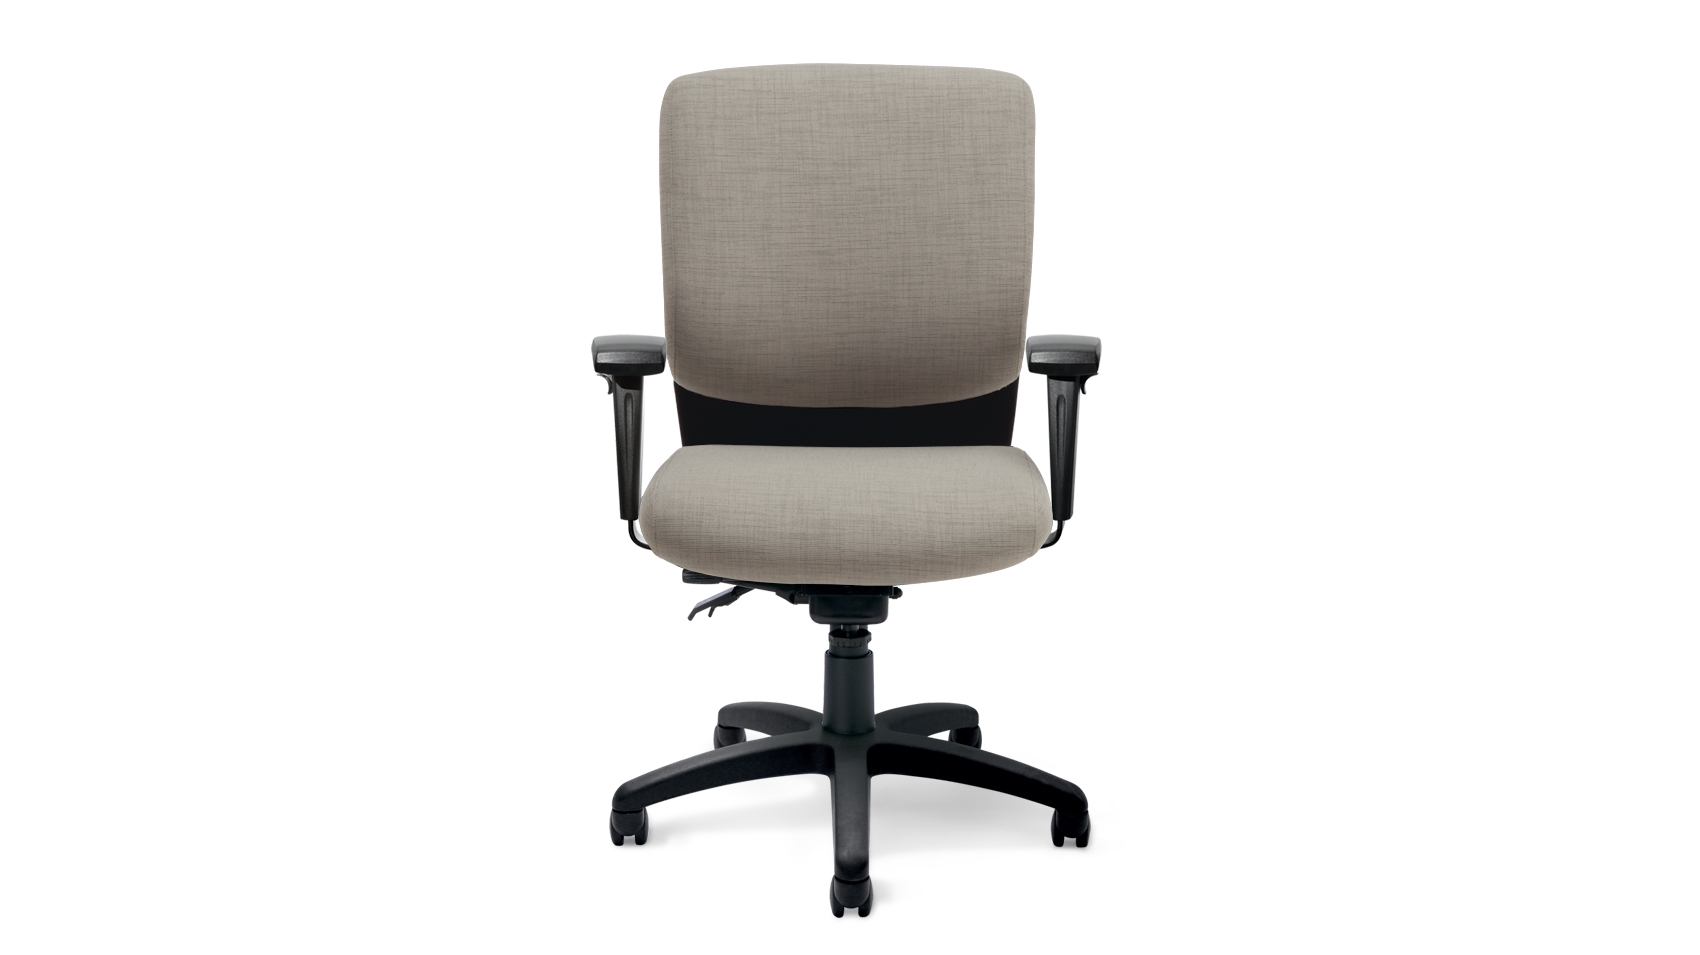 ergonomic chair criteria yellow club wow highmark emme office chairs seating made simple